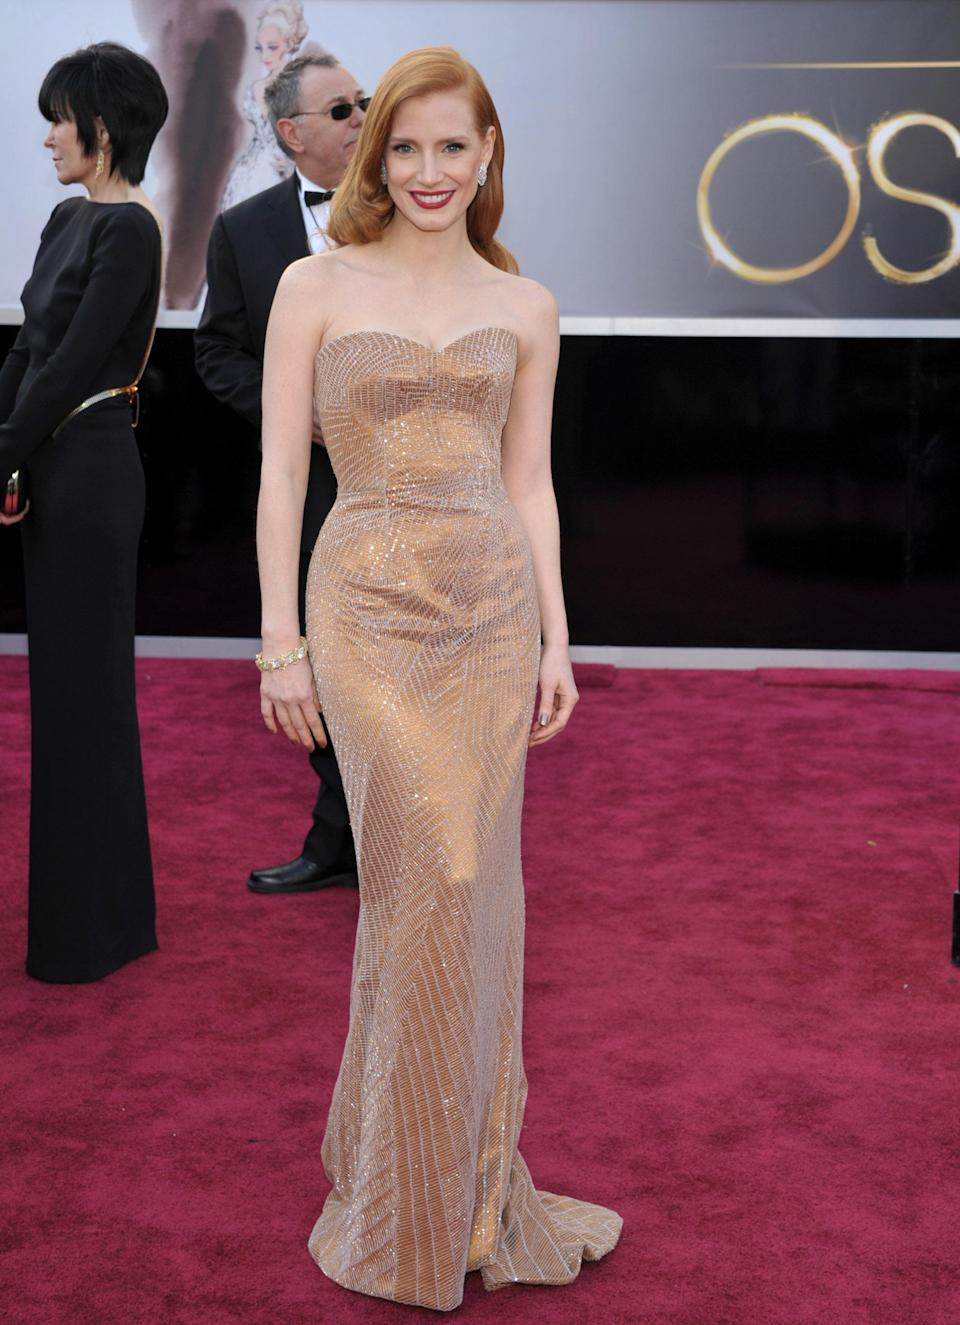 Best: Best Actress nominee Jessica Chastain wowed in a shimmering nude Armani Prive. The strapless gown hugged Chastain in all the right places and was almost enough for us to forgive her for her ill-fitting Golden Globes dress. Almost.